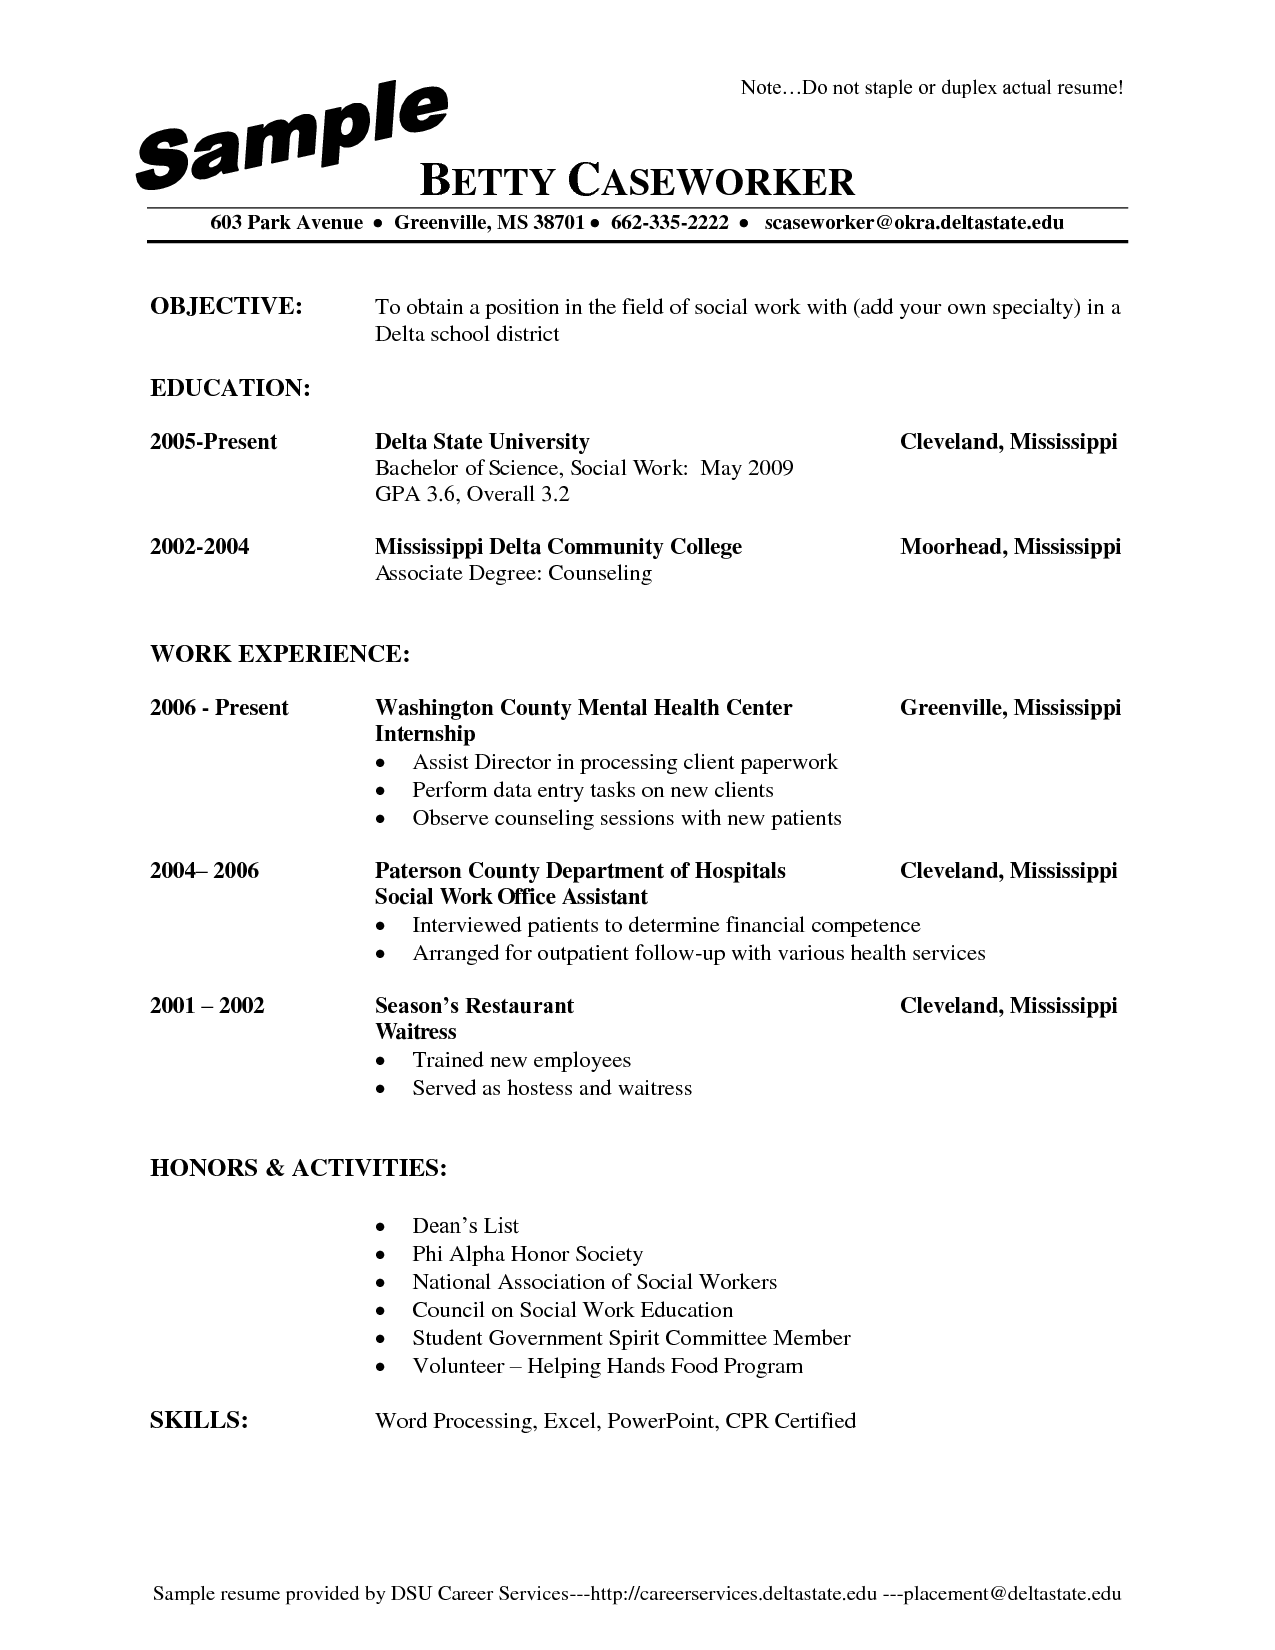 Bartender Resume Objective Samples Pin By Resumejob On Resume Job Sample Resume Resume